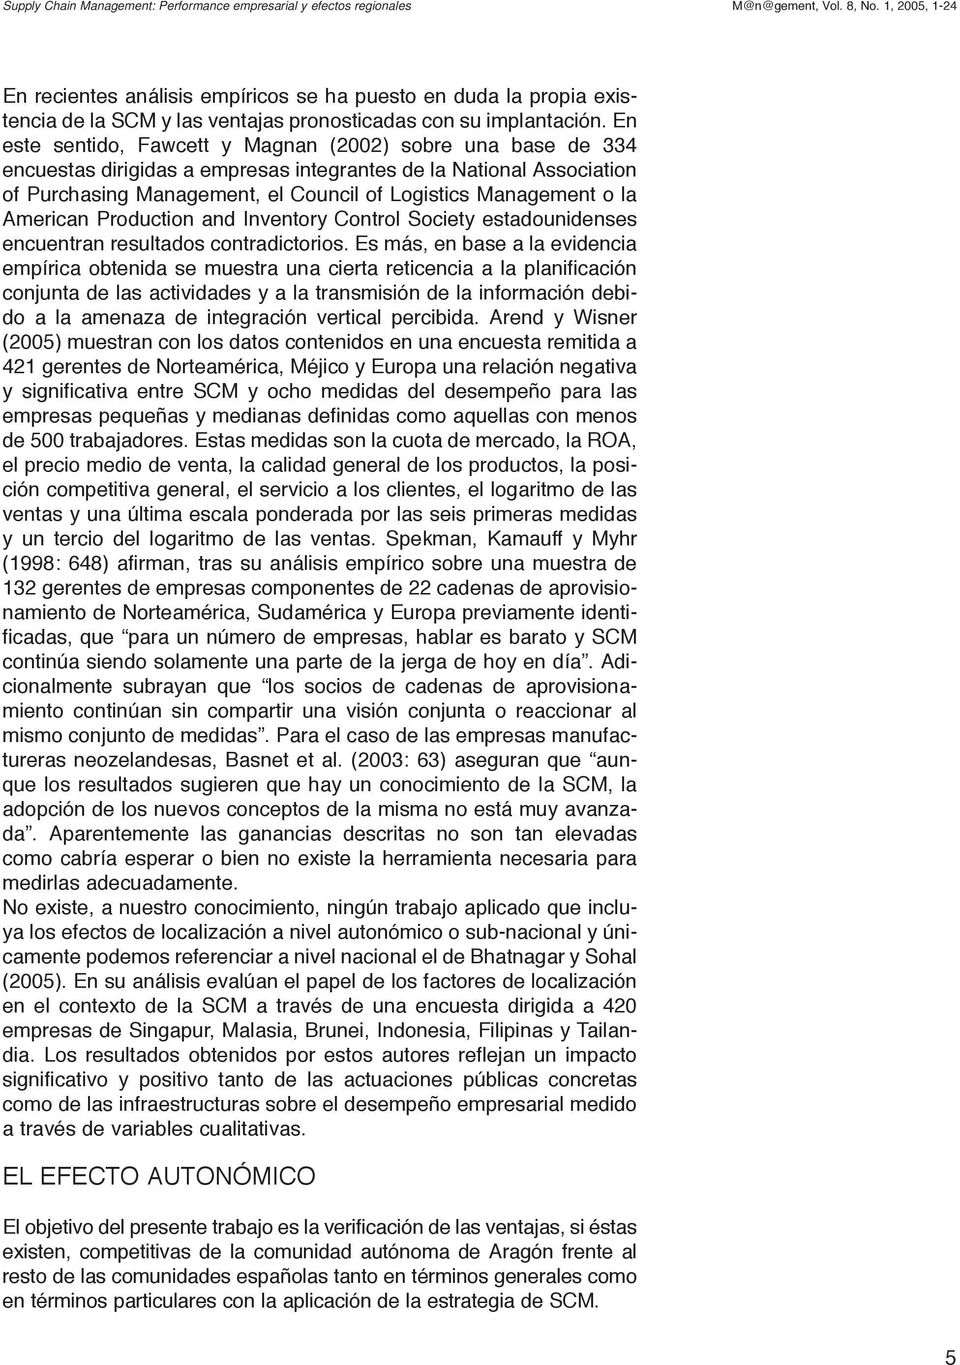 En este sentido, Fawcett y Magnan (2002) sobre una base de 334 encuestas dirigidas a empresas integrantes de la National Association of Purchasing Management, el Council of Logistics Management o la